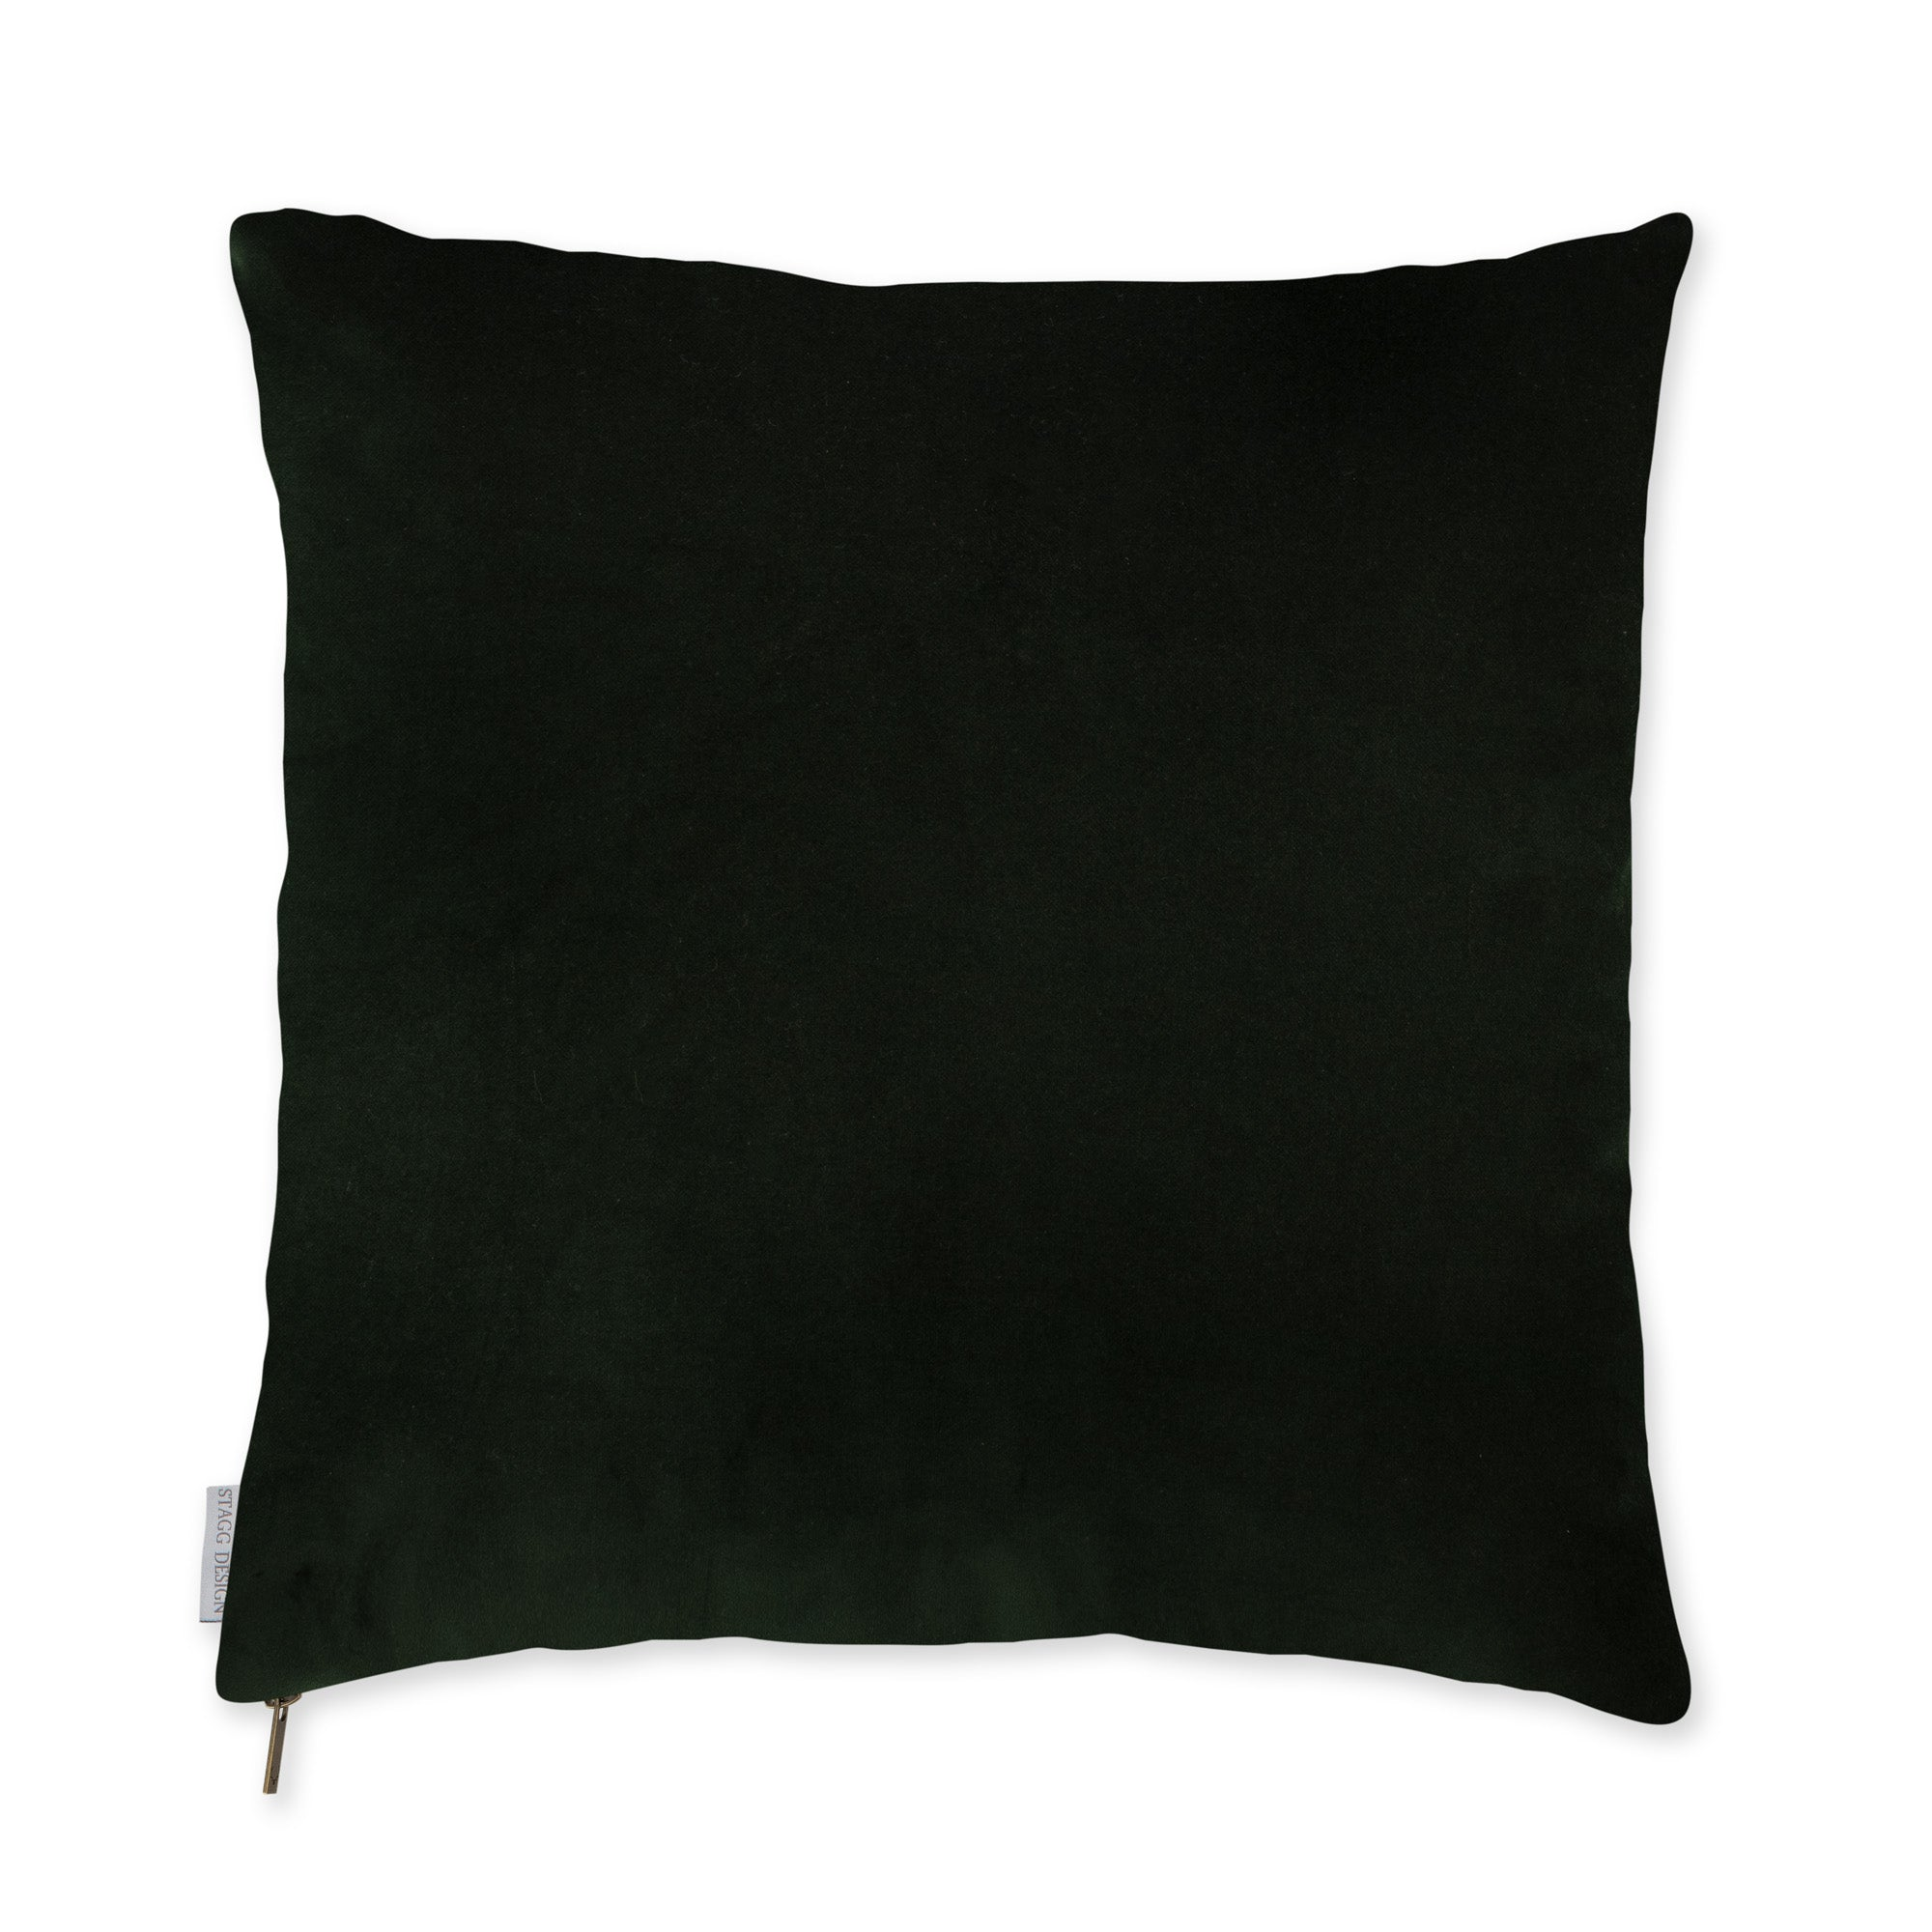 Harrison Pillow Pairing (Set of 5)